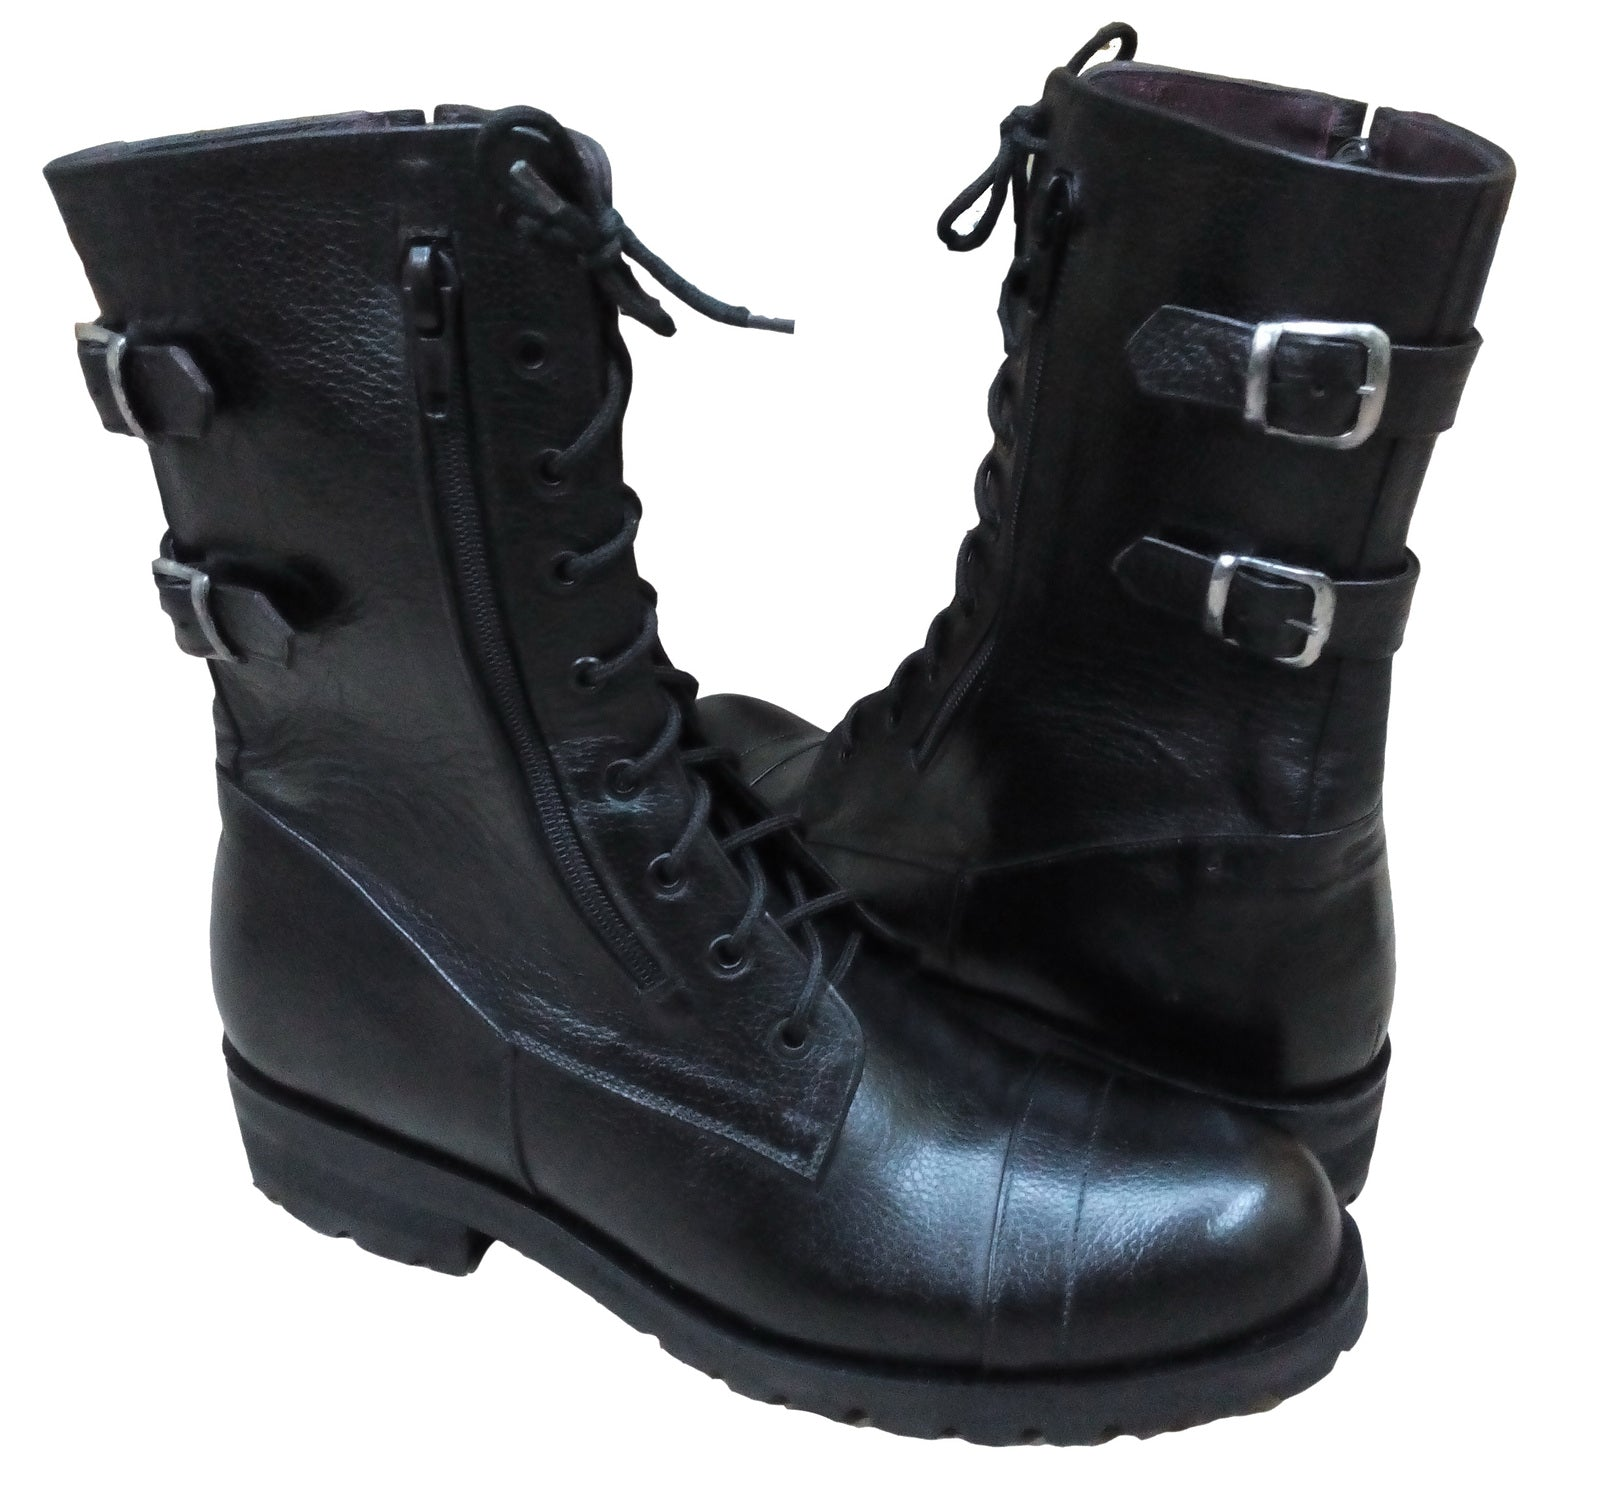 New Handmade Mens Military Style Superb Leather Boots with Tyre Sole, Army Boots